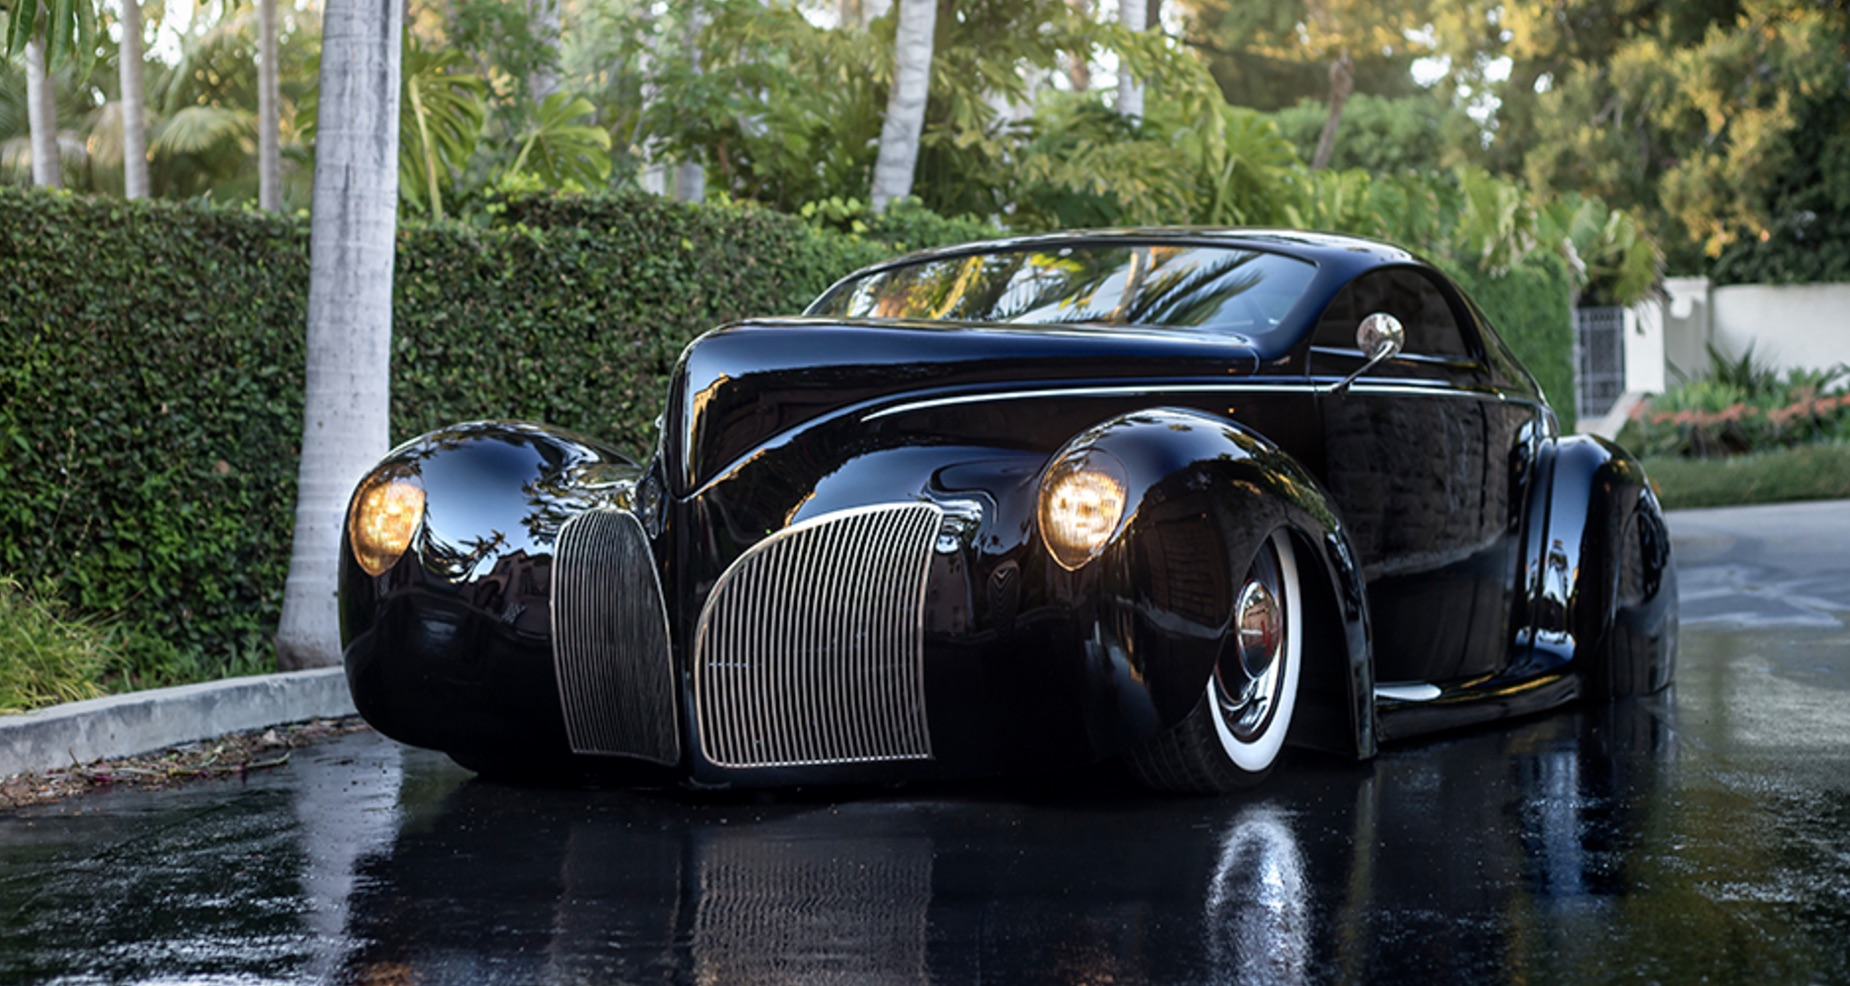 Cherokee For Less >> 'Scrape' custom 1939 Lincoln Zephyr Coupe heading to auction